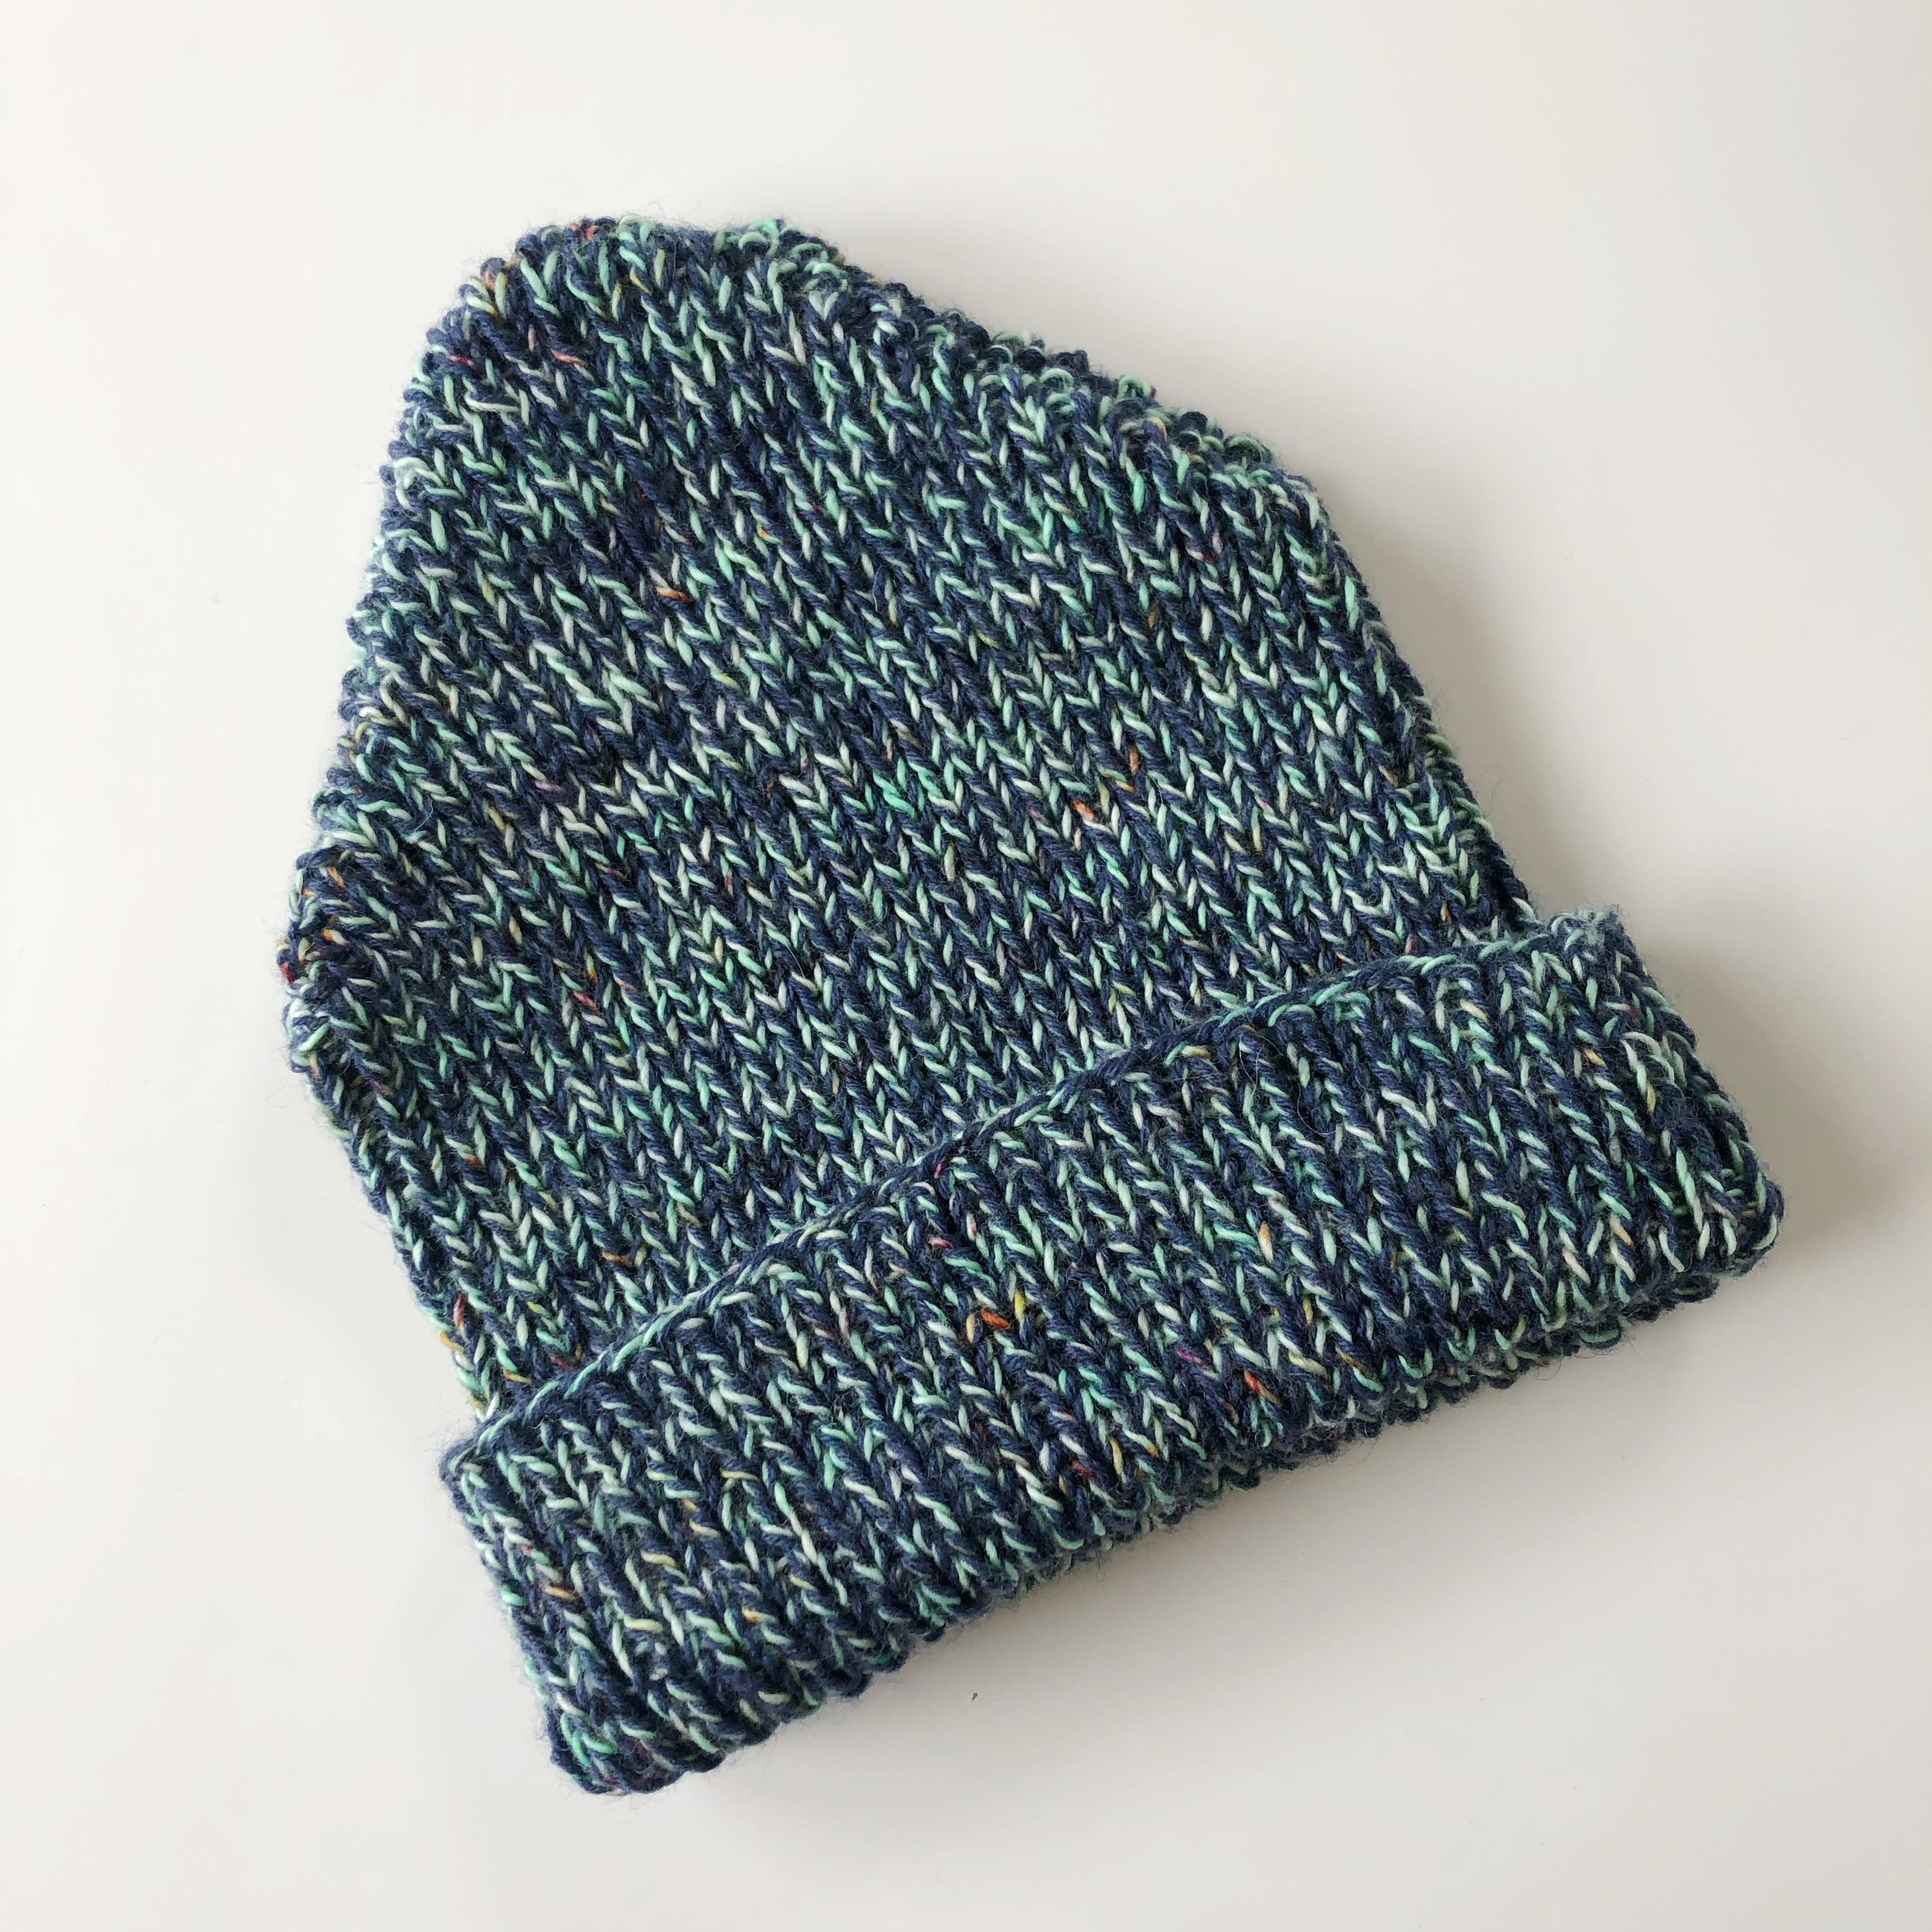 Knitdiaries-make-it-fitted-make-it-slouch-test-knit-3.JPG